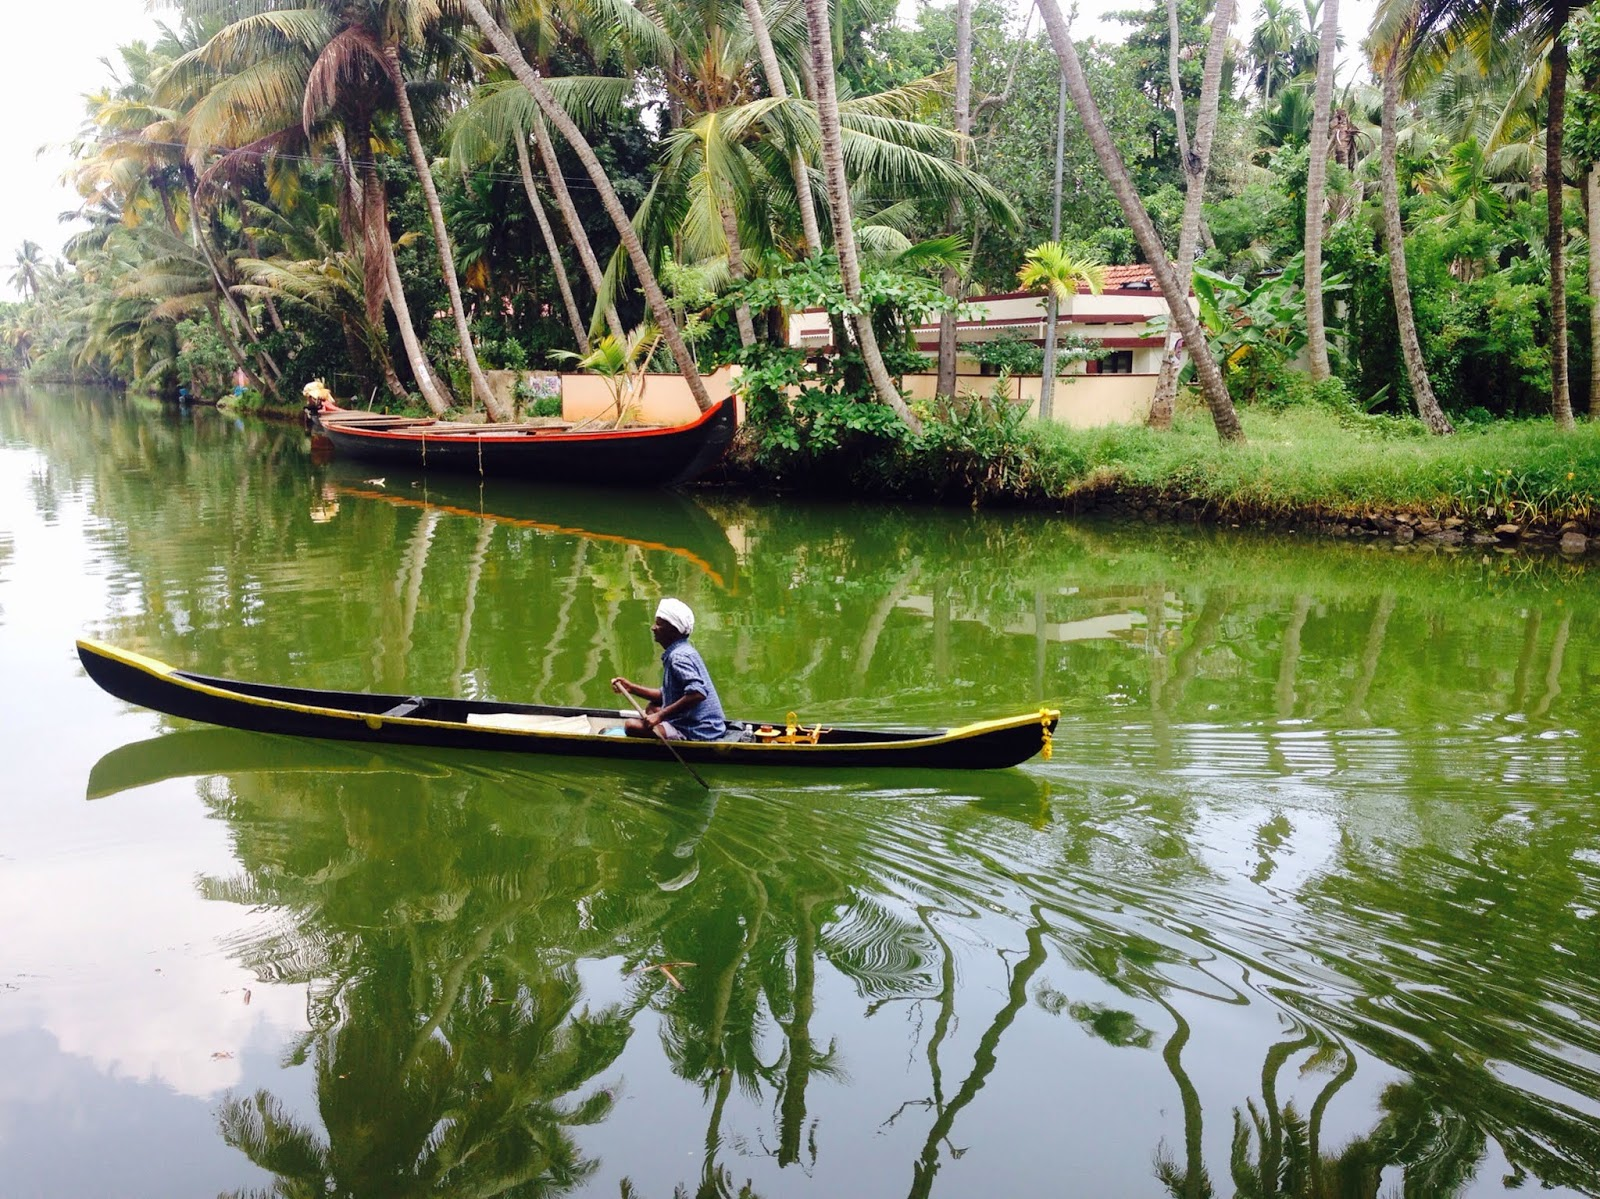 Canoe on the Alleppey canal